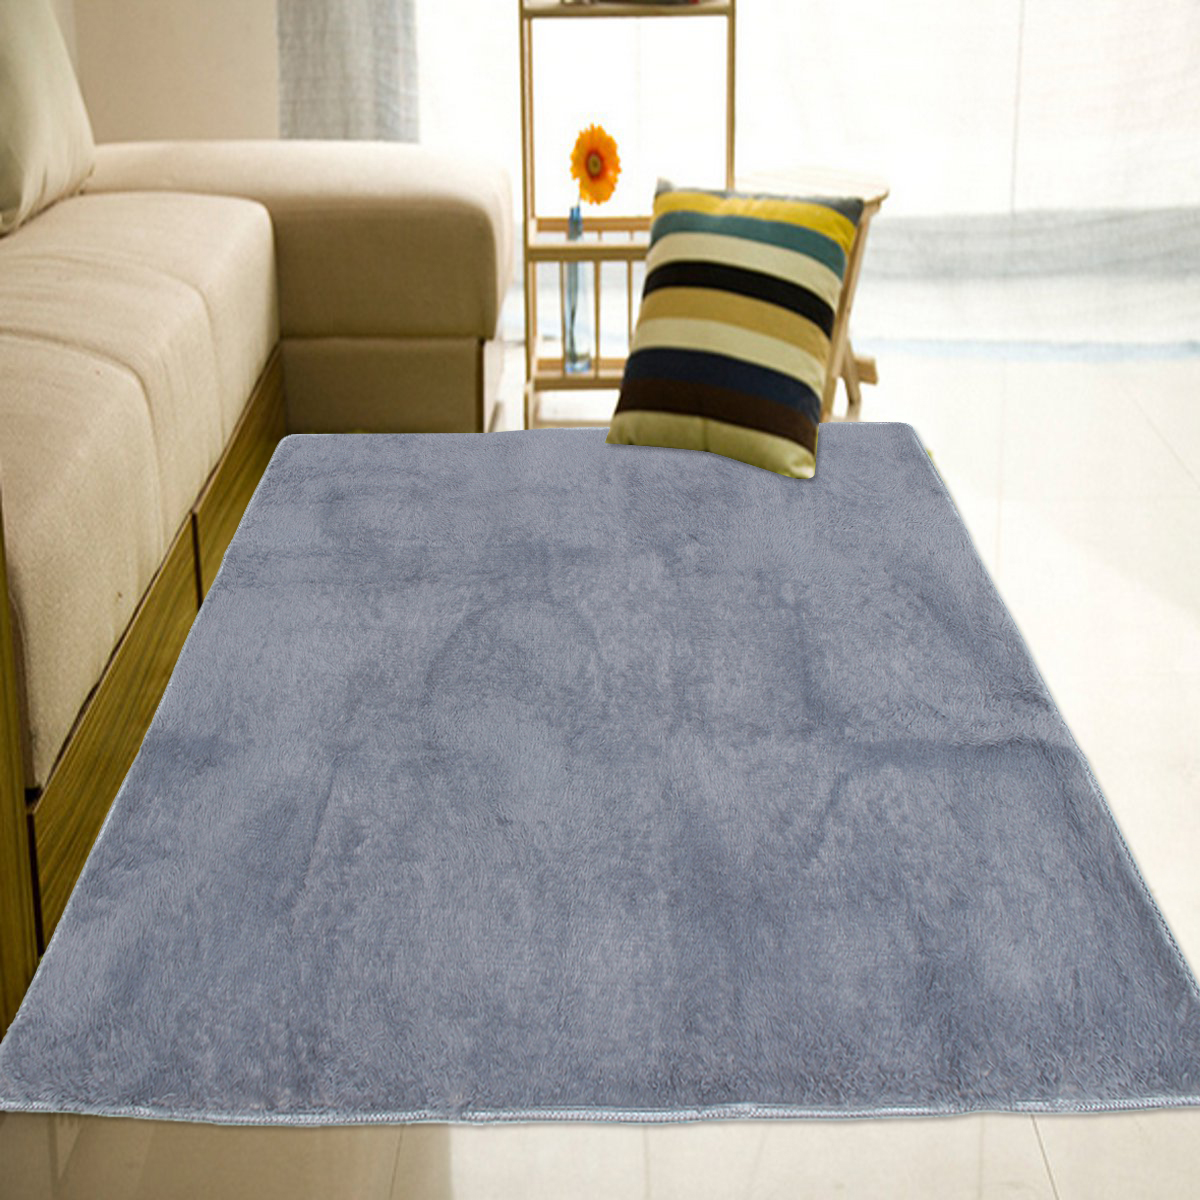 160X120cm Shaggy Fluffy Rugs Anti Skid Area Rug Home Bedroom Living Room  Carpet Floor Mat